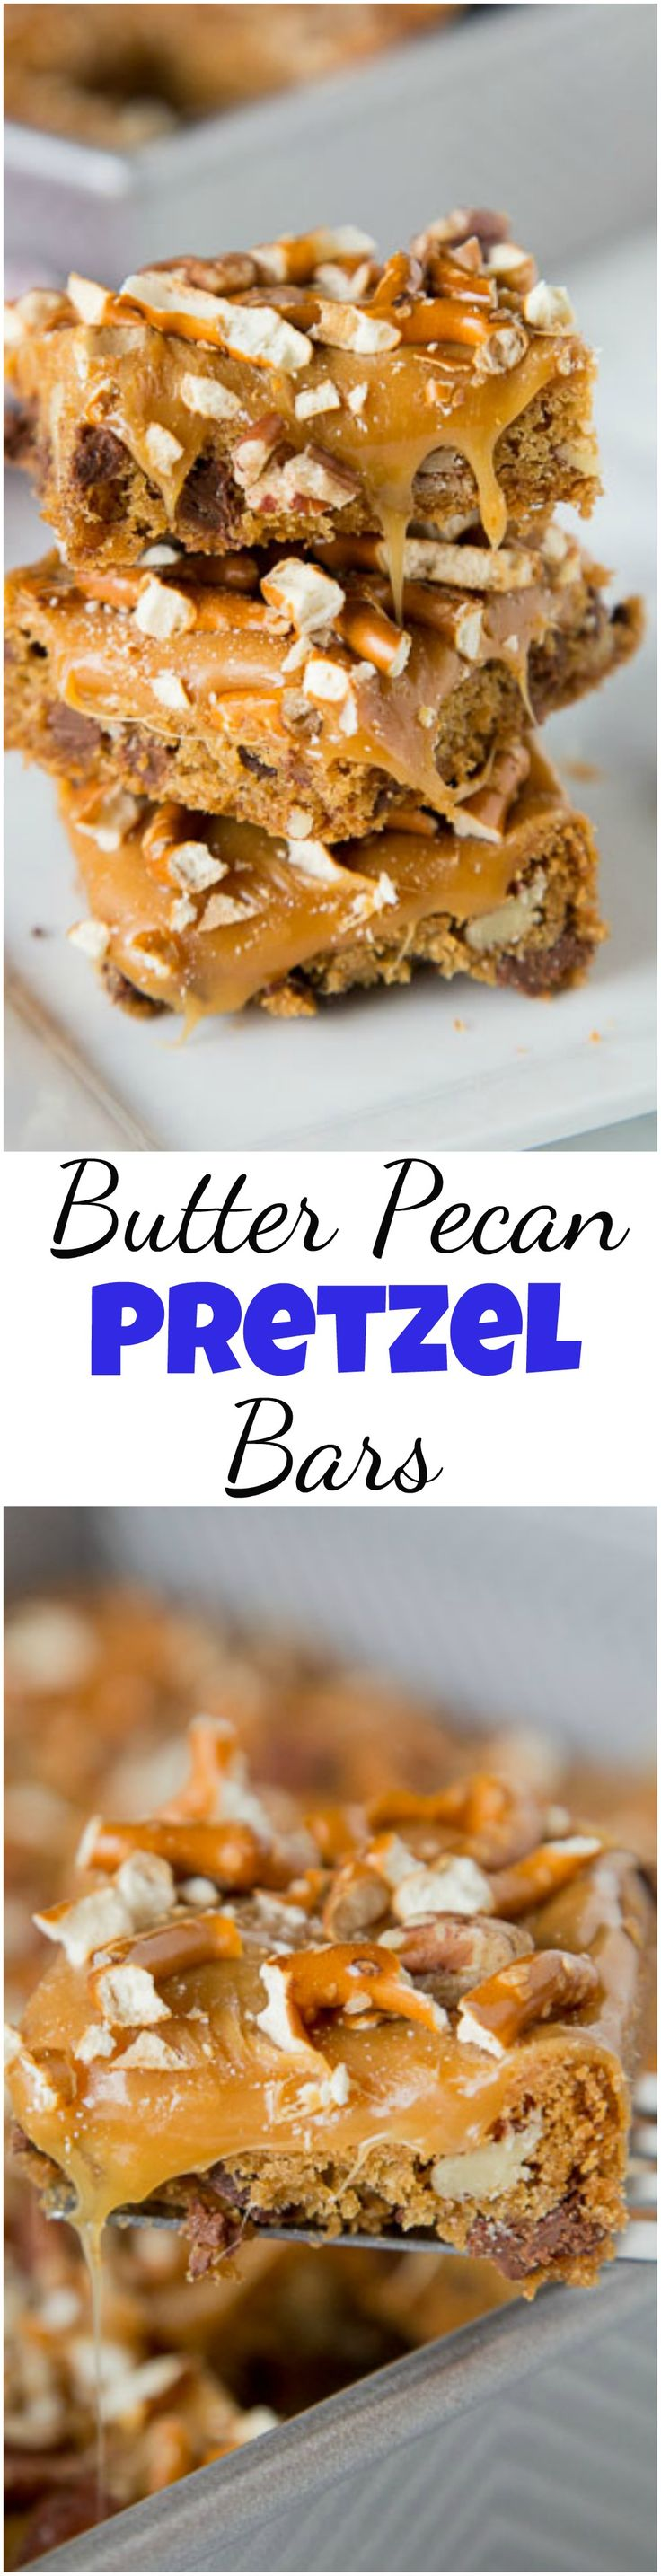 Butter Pecan Pretzel Bars - sweet and salty comes together in a super easy dessert!  Gooey caramel, pecans, and pretzels makes it extra delicious. #christmascookies #pillsbury #cookiecountdown #holidaybaking #caramel #dessert #baking #pecans #pillsburycookiecountdown @pillsbury